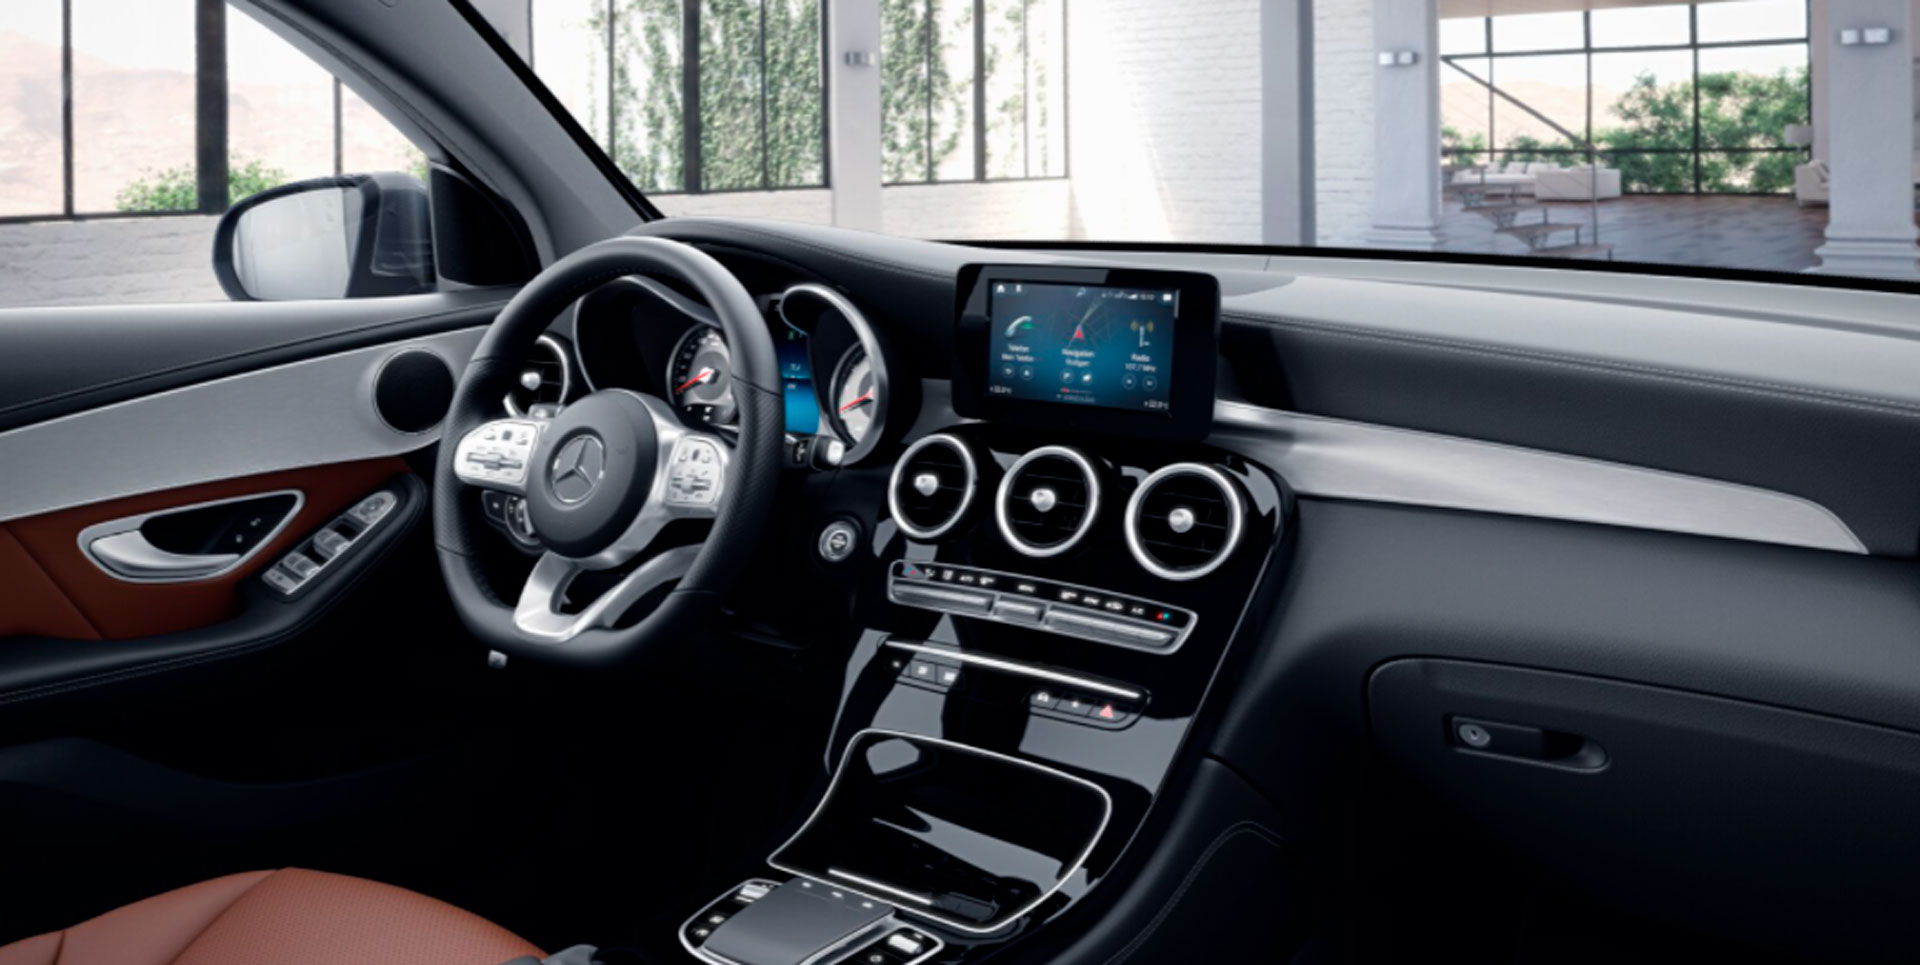 Mercedes-Benz GLC Coupe салон